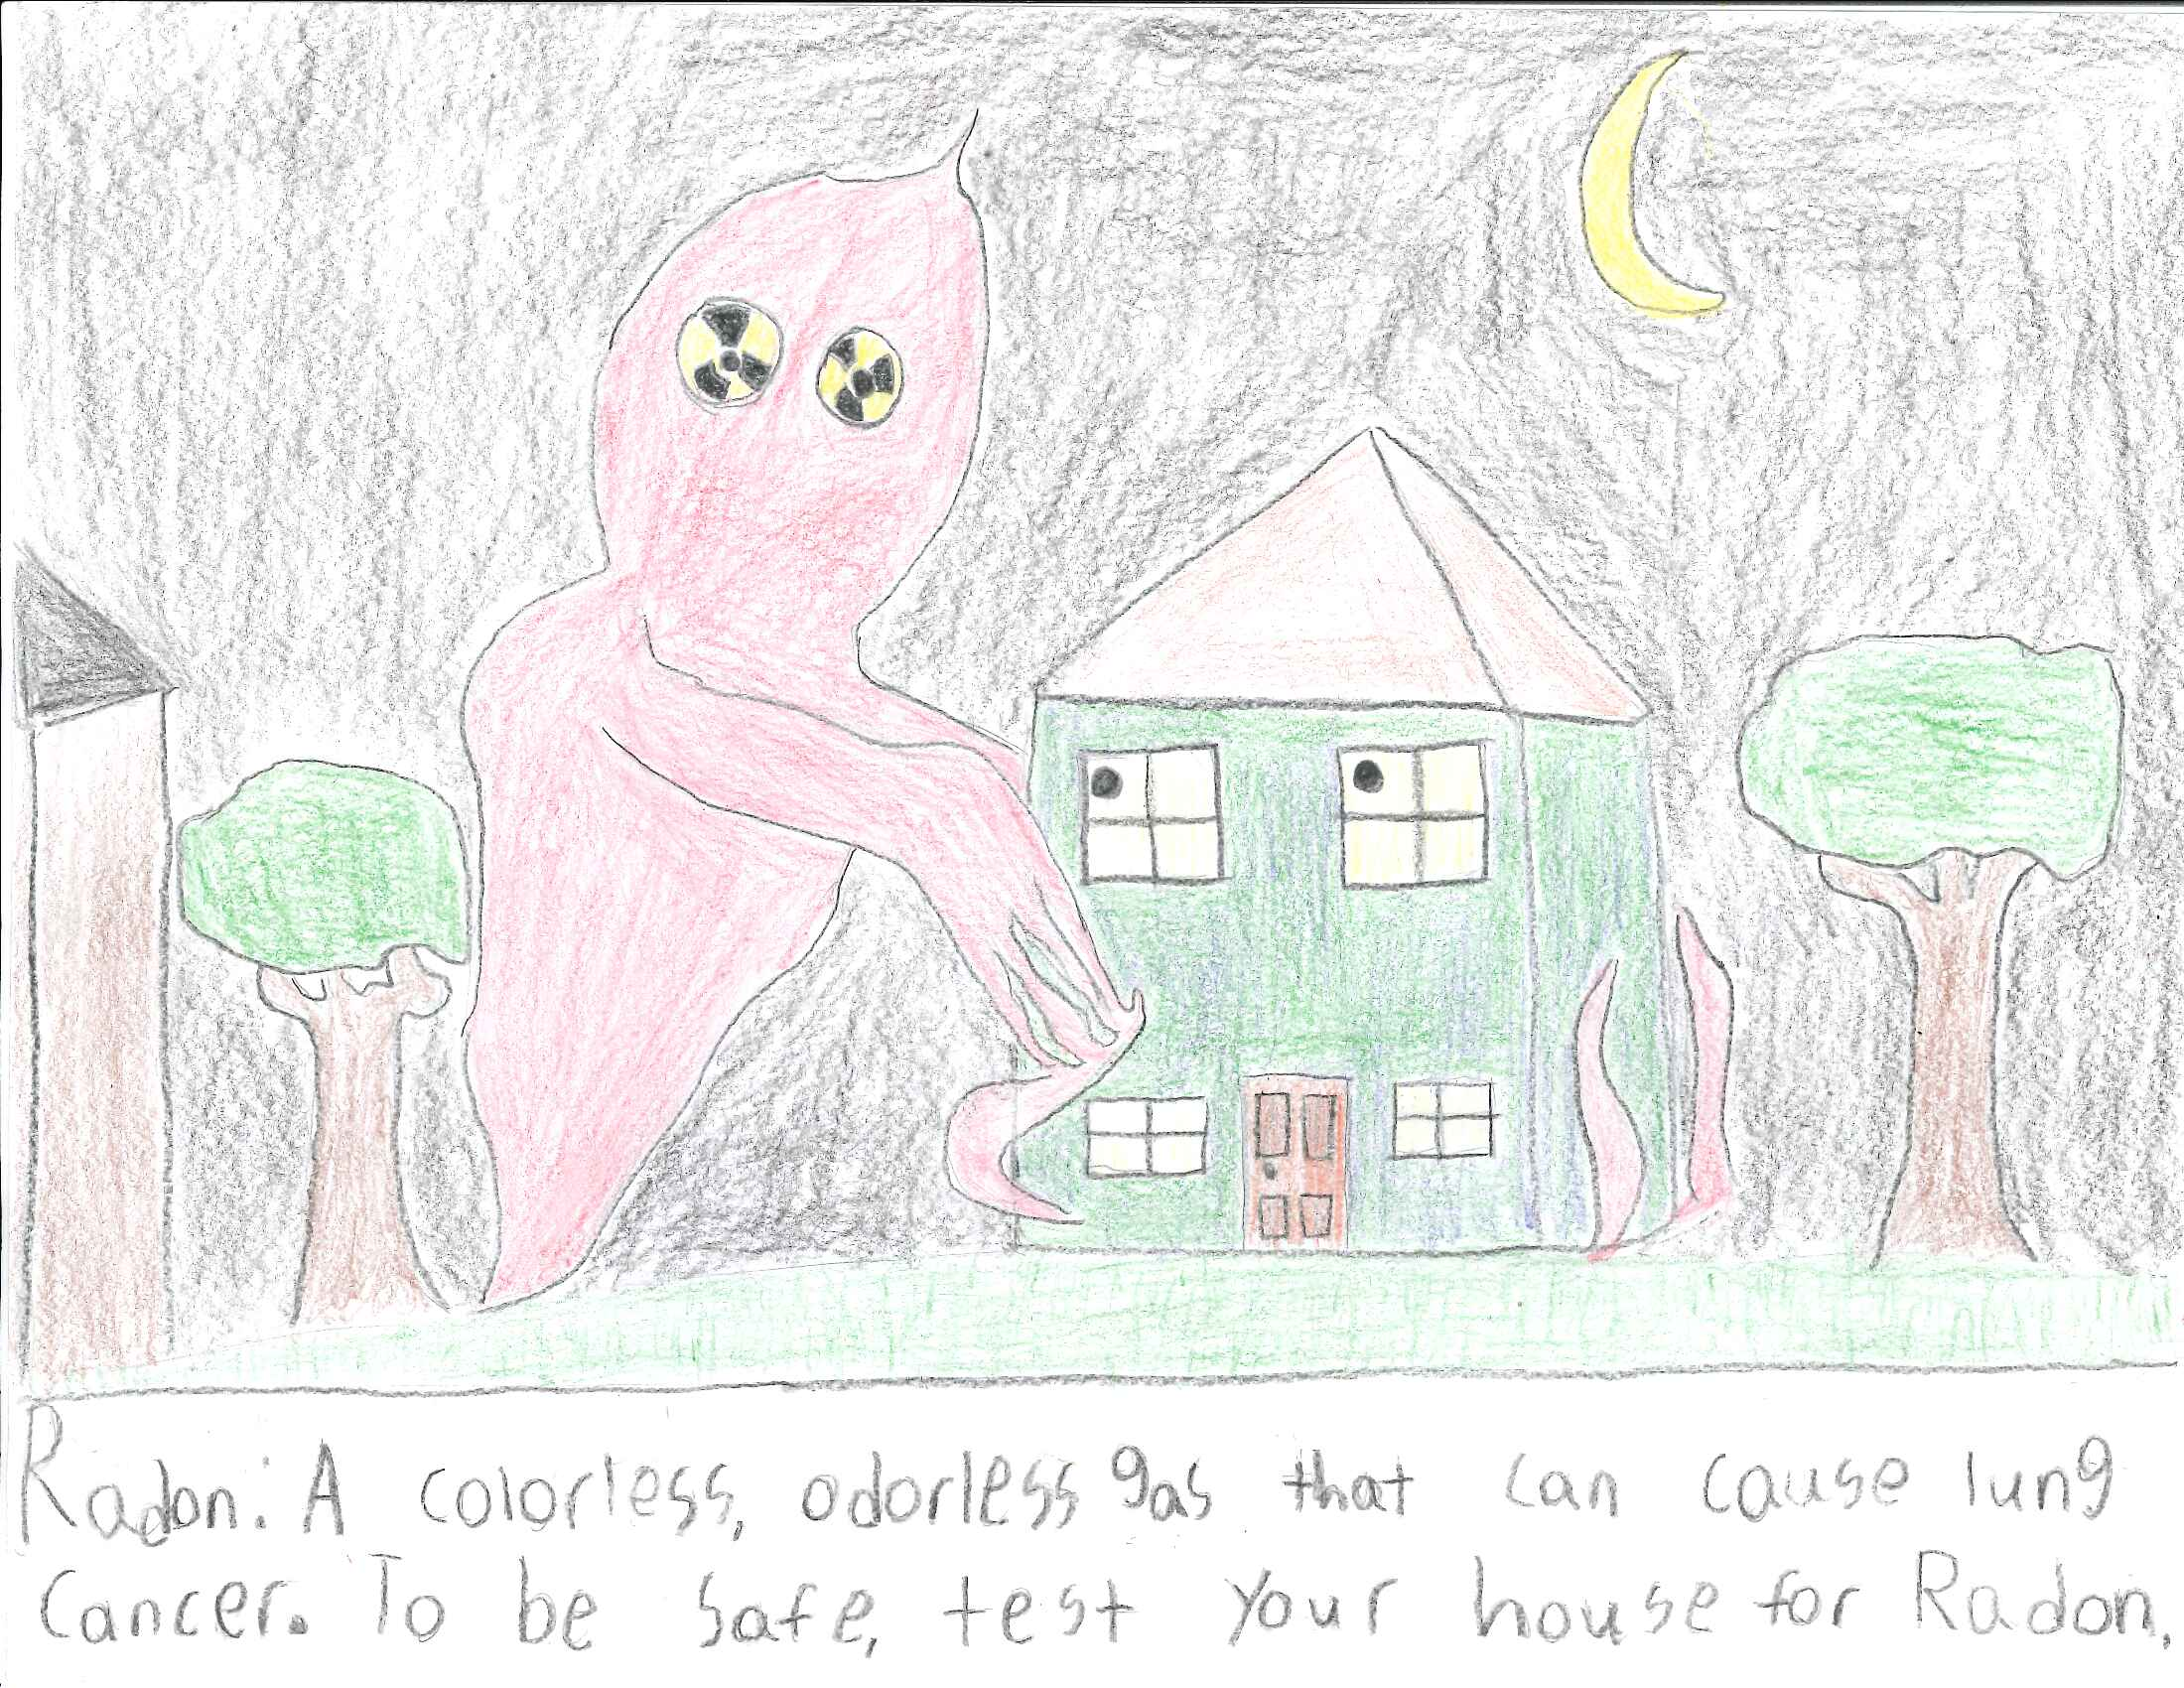 Connor Allen, a seventh-grader from Athens, Georgia, won the third-place prize in Georgia's Radon Poster Contest for a depiction of a large, ghostly radon cloud menacing a worried-looking house.